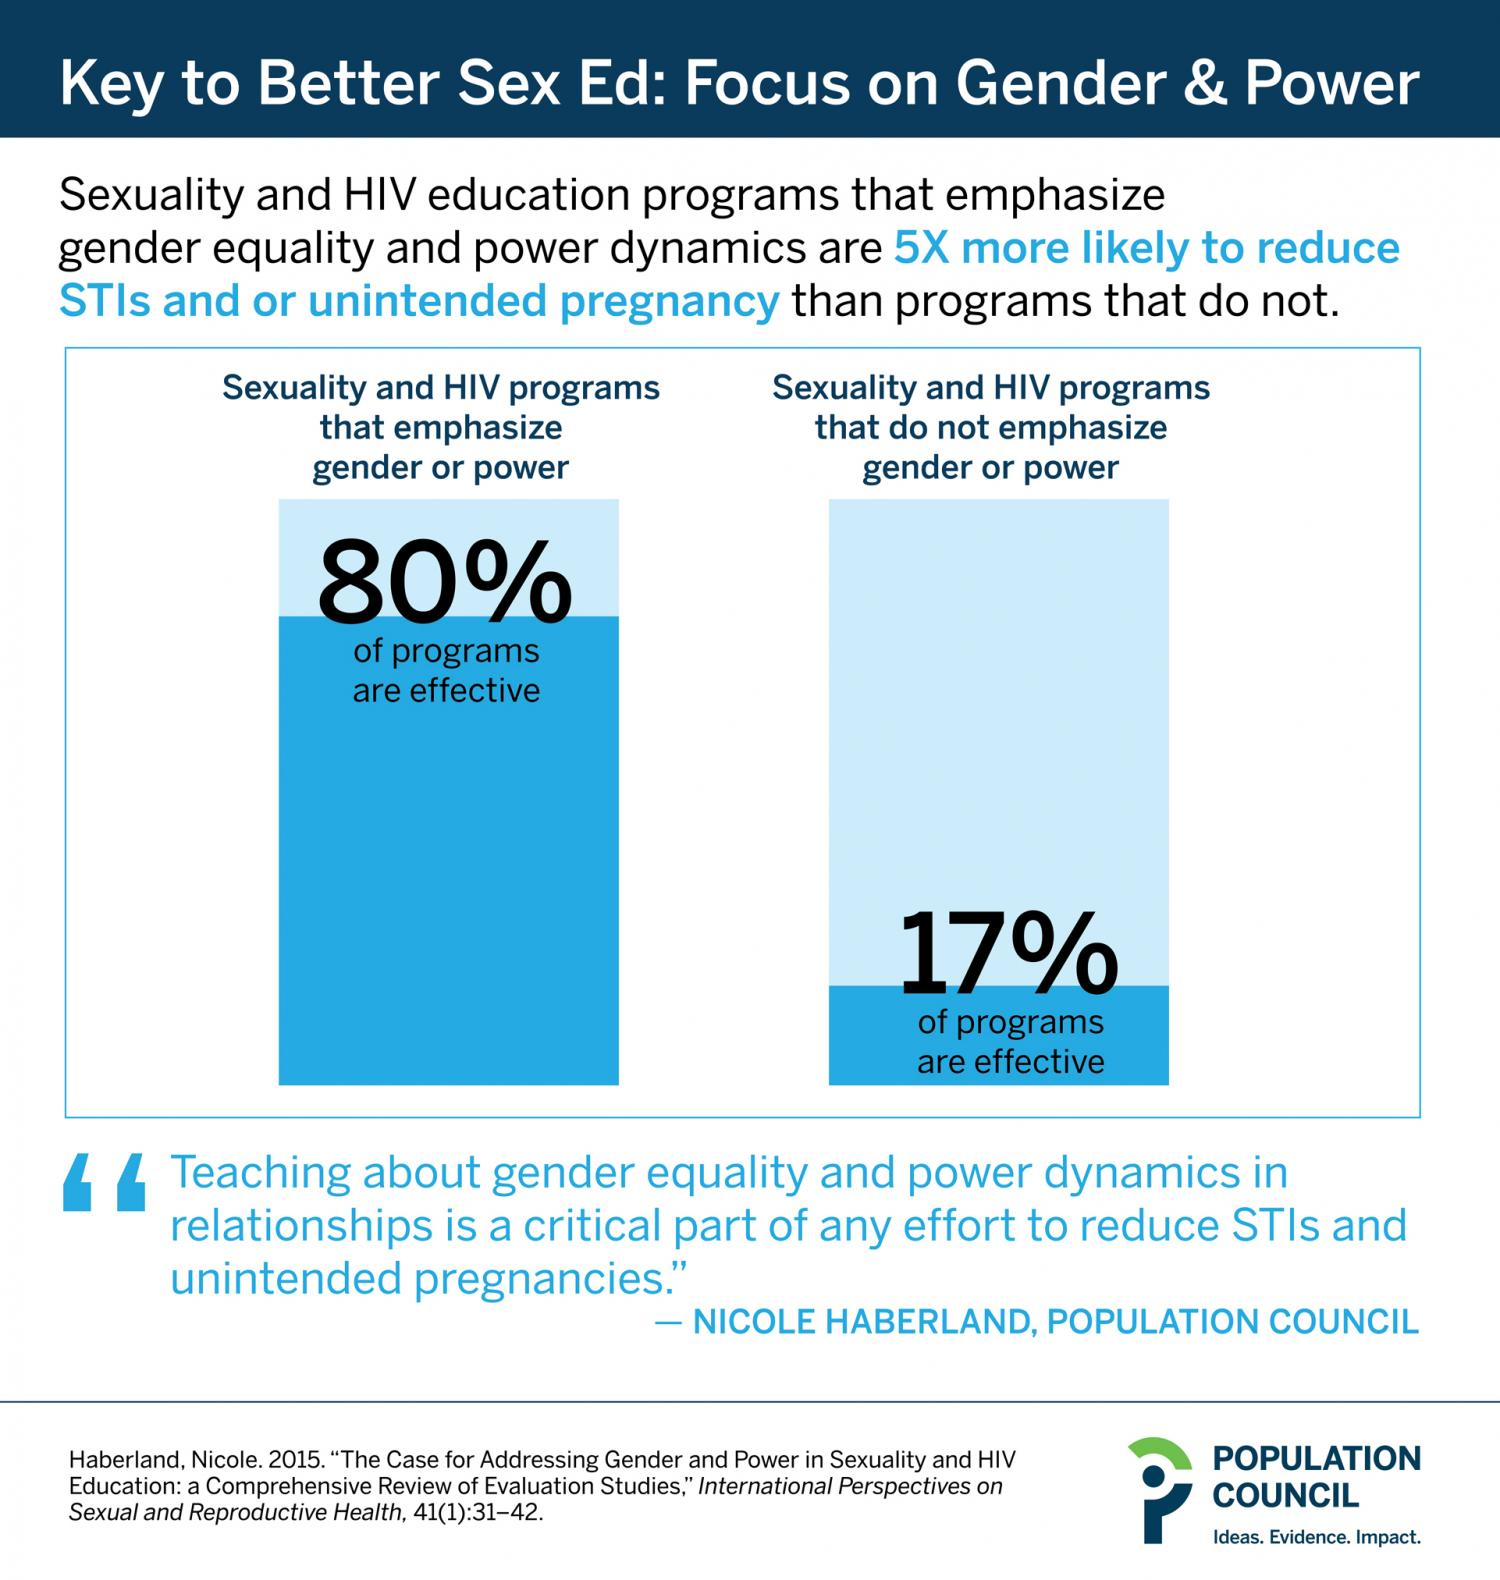 Gender and power topics in sexual education